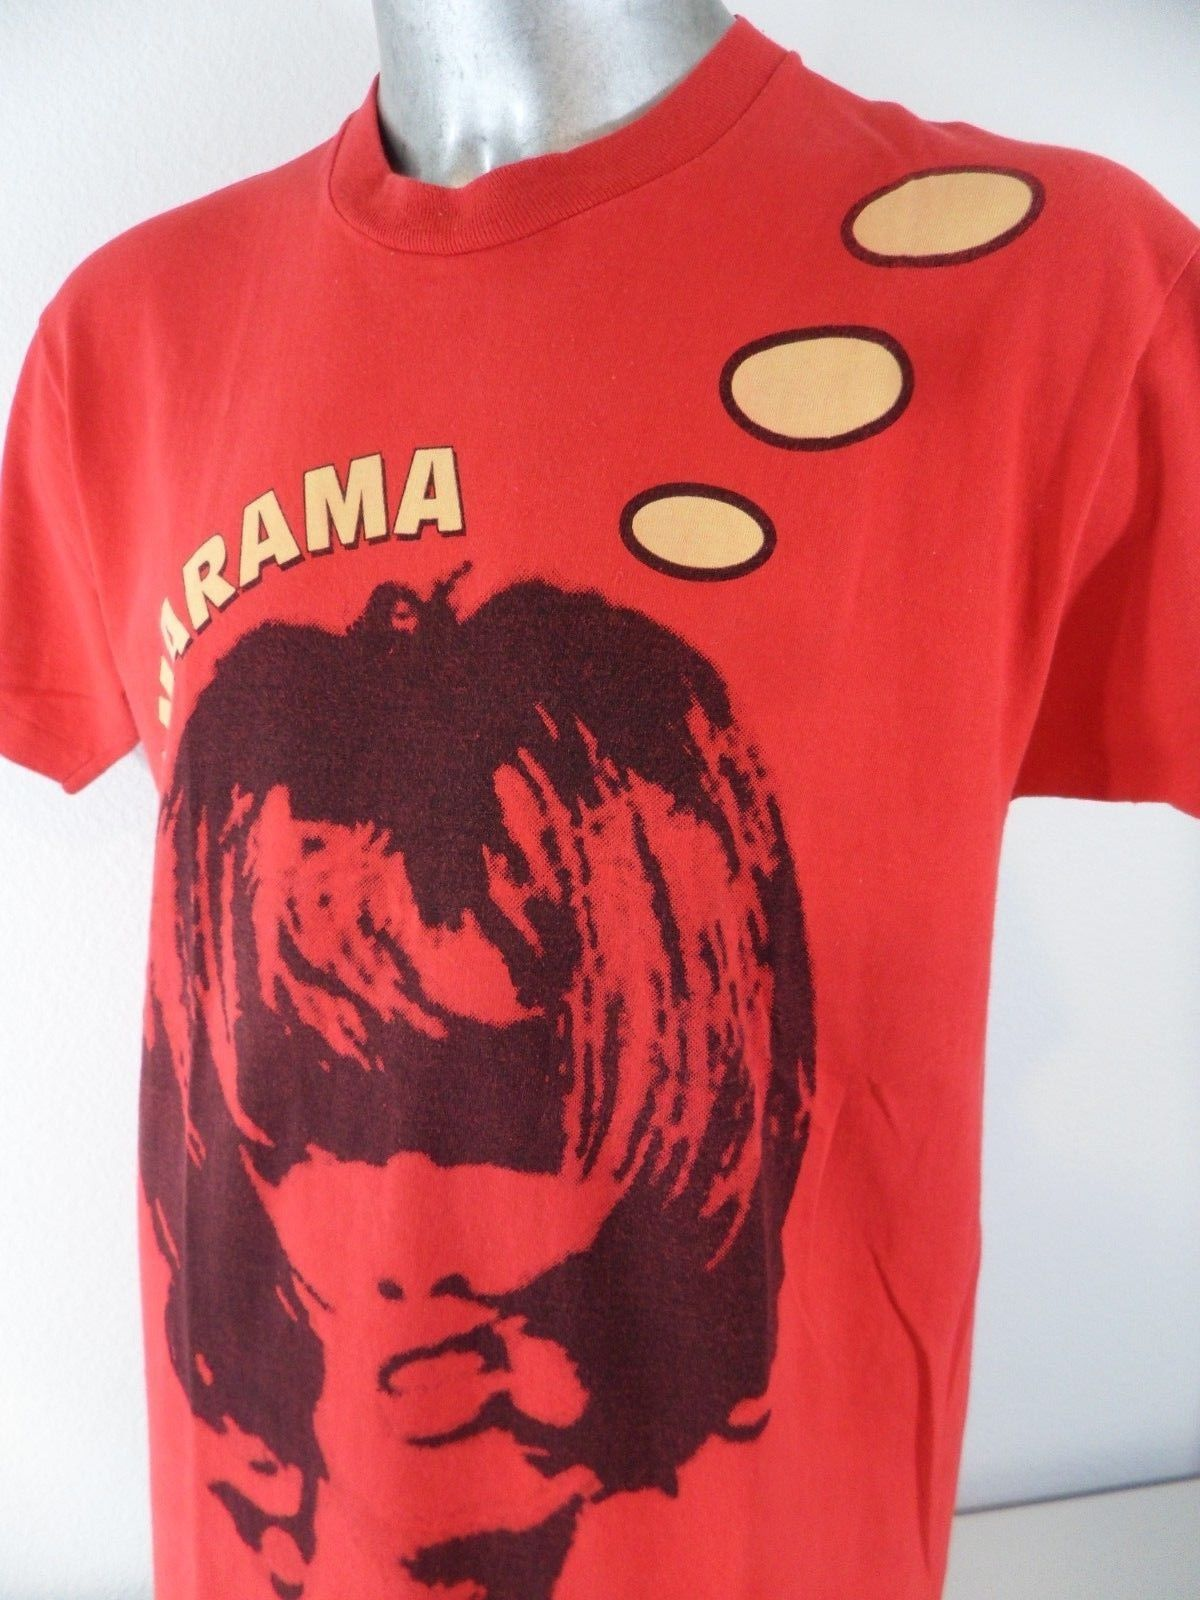 I Cant Believe This Vintage T-Shirt